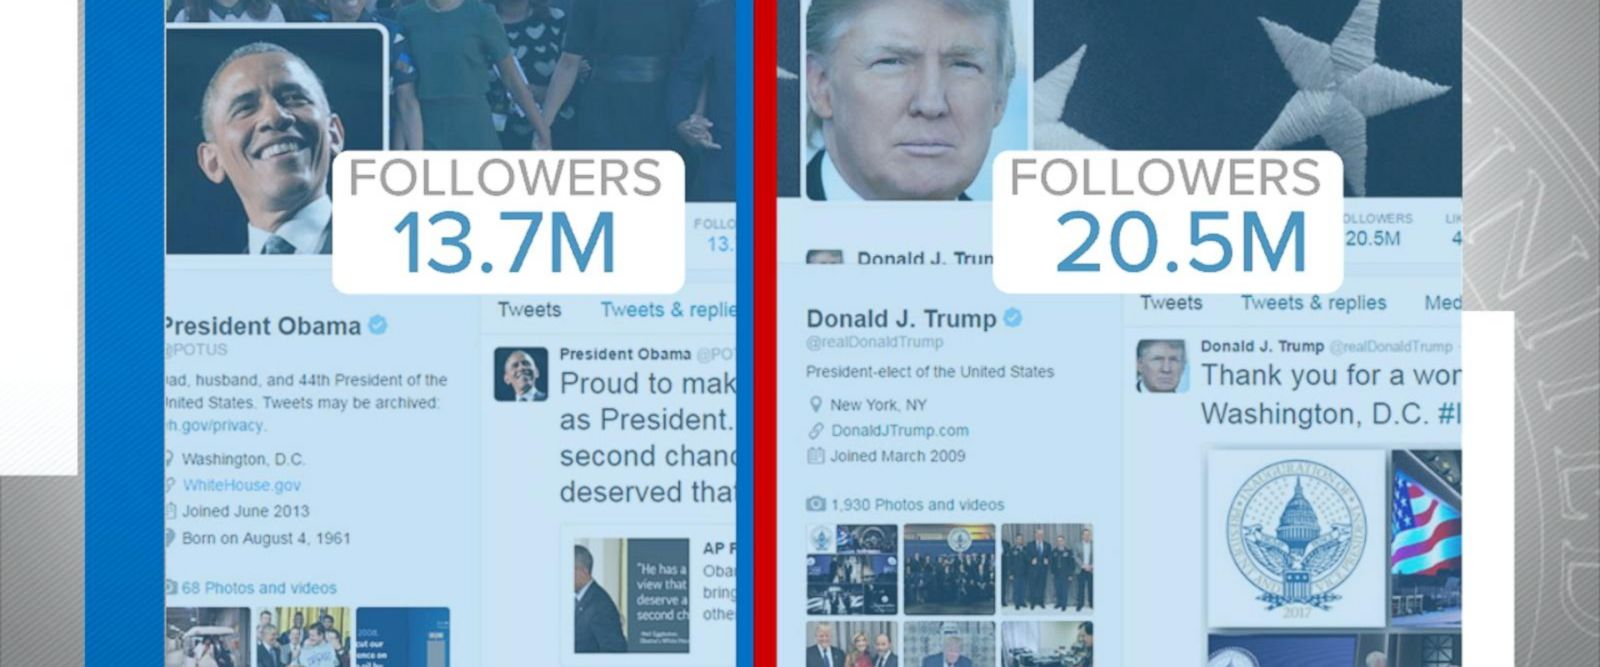 VIDEO: Will Donald Trump Take Over POTUS Twitter Account?